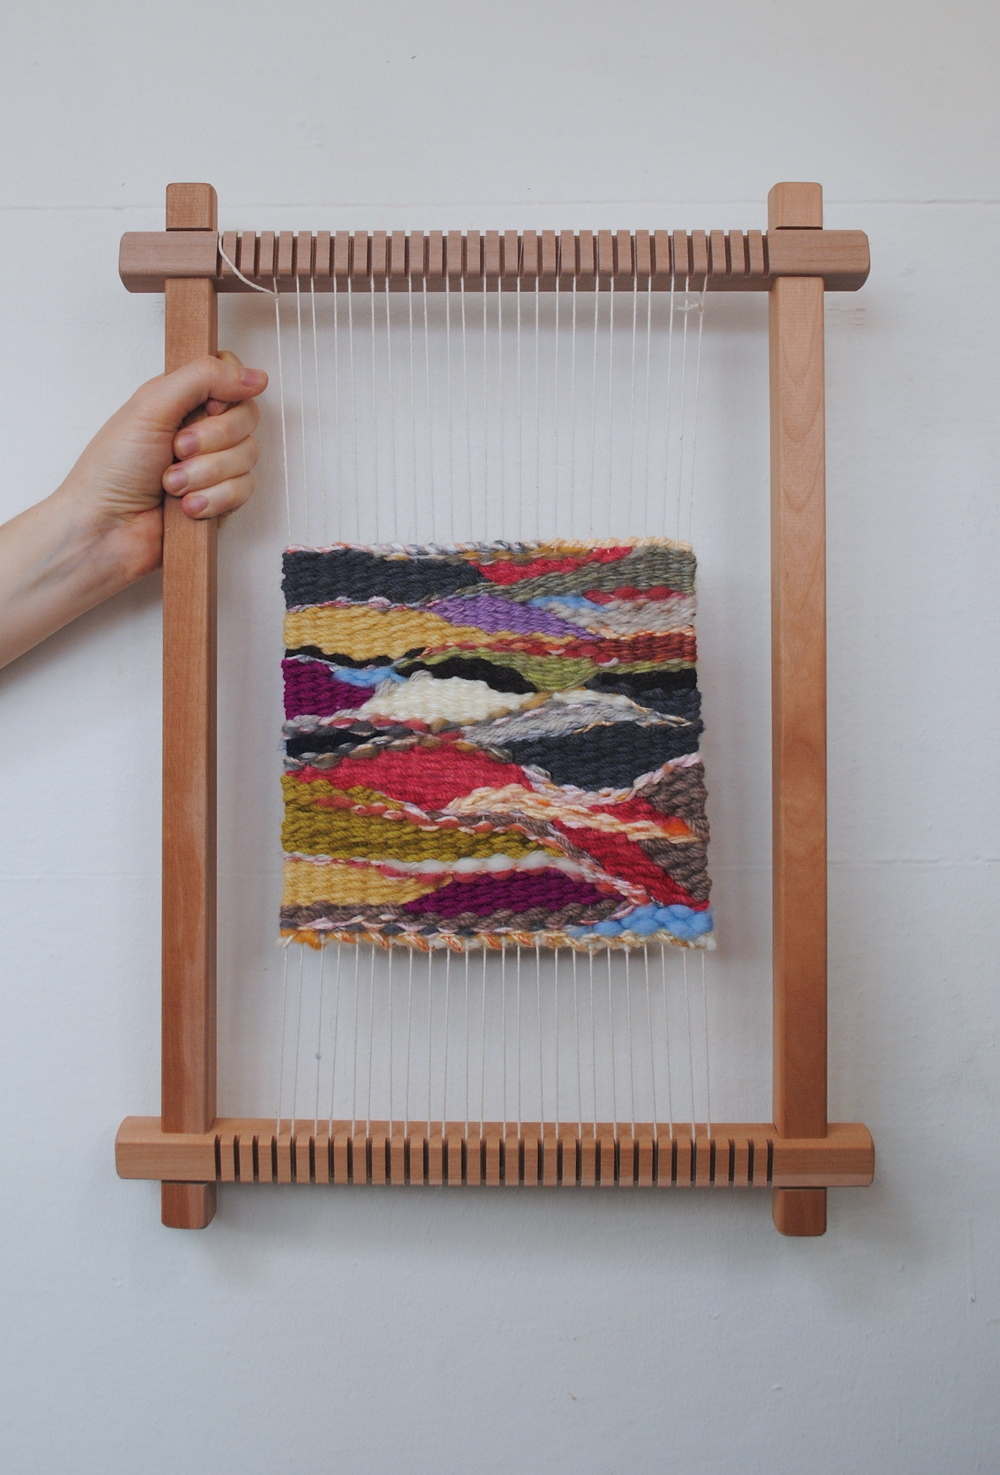 a weaving of kylie's